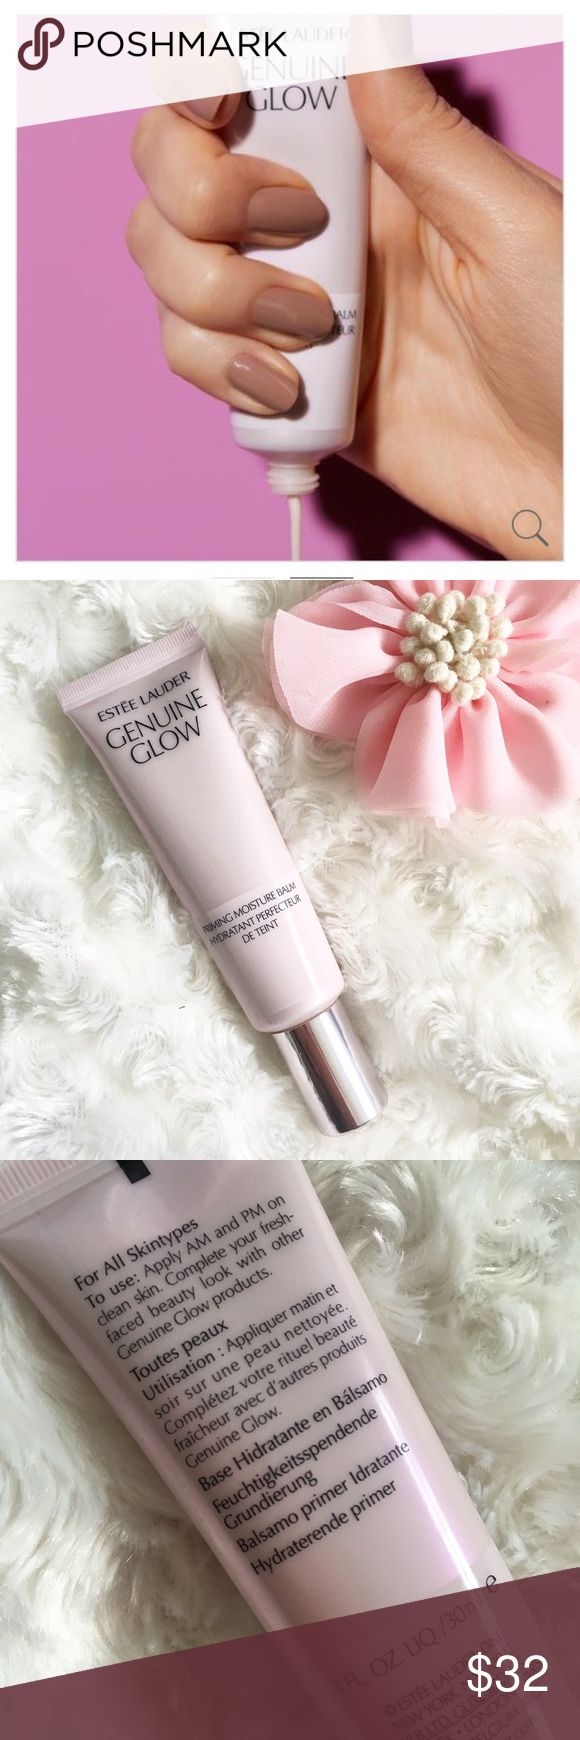 RESTOCKED!! Estée Lauder Primer RESTOCKED!!🎀 NWT Estée Lauder Genuine Glow Priming Moisture Balm. Innovative water fusion formula perfects, primes, weightlessly hydrates. Skin feels fresh, smooth with a shine-free glow.  With daily use, this balm:  • Refines texture  • Evens skin tone  • Minimizes pores. It primes and perfects skin so makeup goes on easily, or it can also be used on its own for its key skincare benefits. Apply AM and PM before applying makeup💋 Reasonable offers only please…